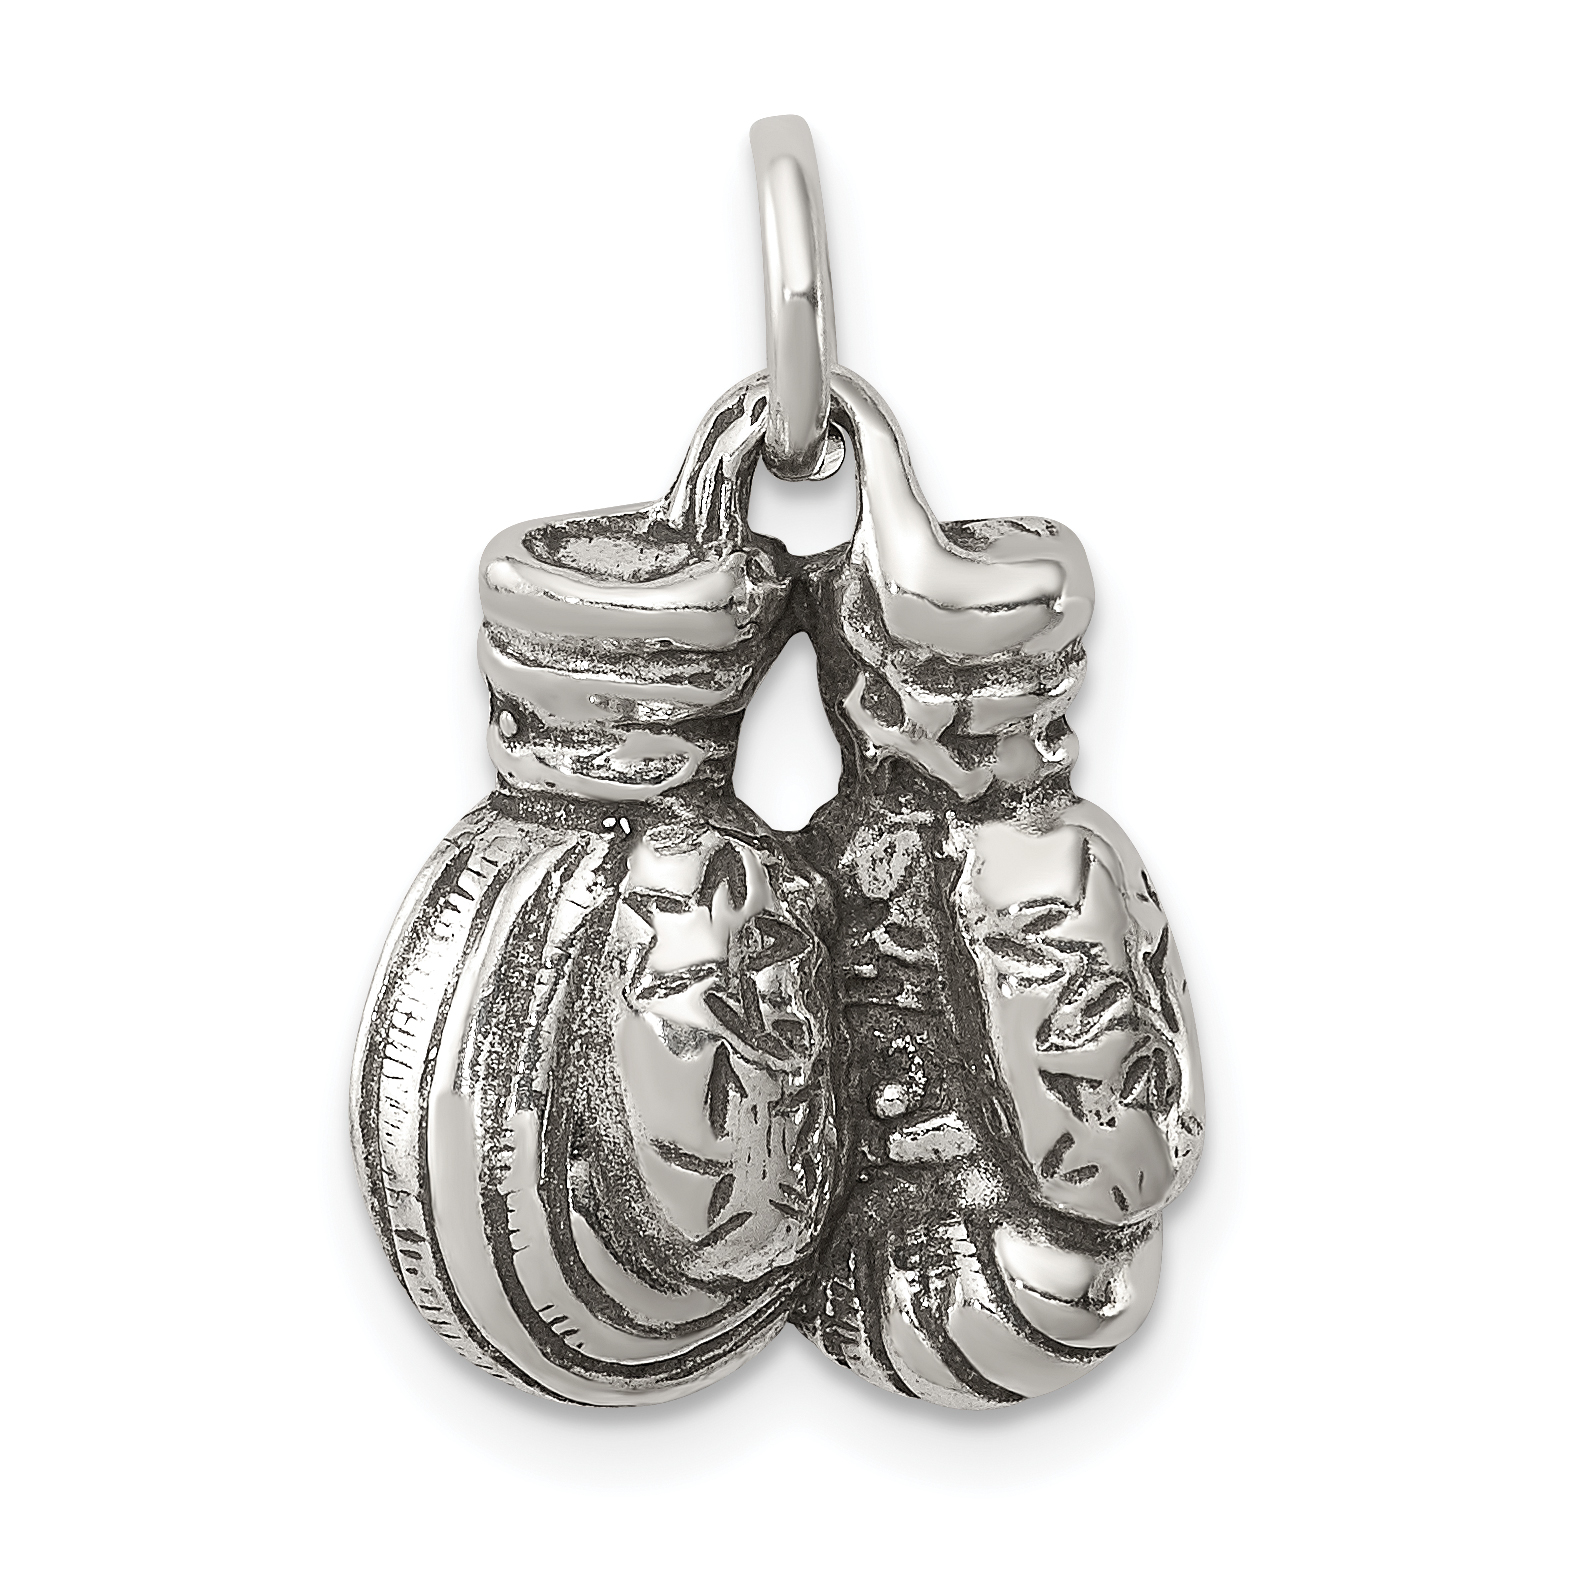 Boxing Glove Pendant Charm 925 Sterling Silver Stamped Chain Necklace